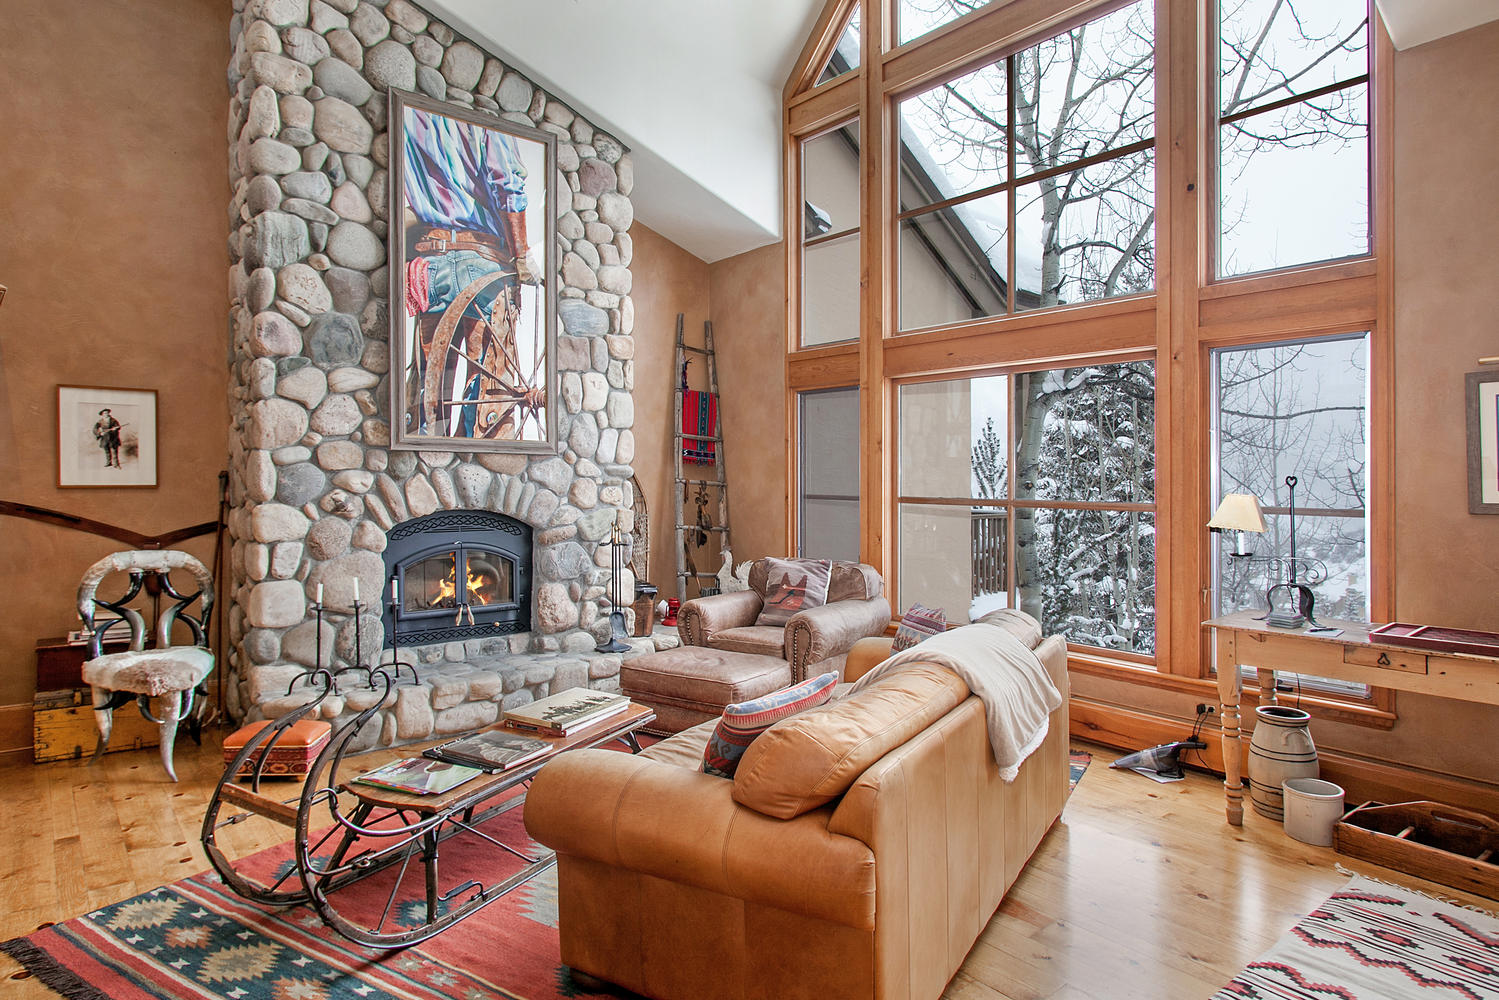 Townhouse for Sale at Saddleridge Villas #9 44 Meadow Lane #9 Beaver Creek, Colorado, 81620 United States